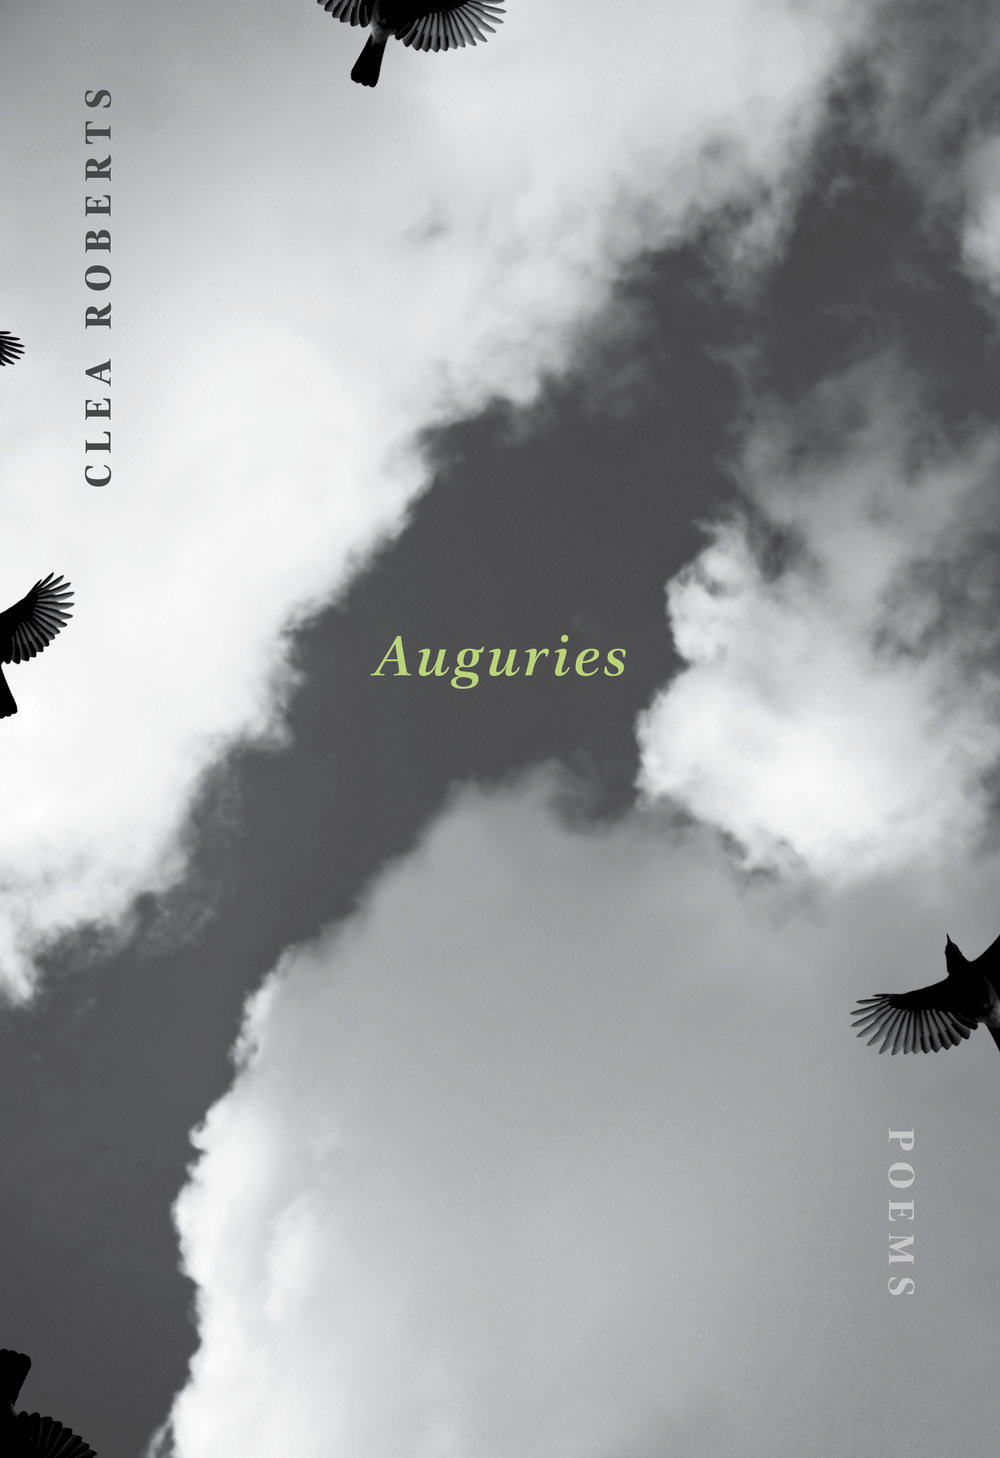 """- Dust on my boots, a blackstream edged with ice,and the whistle of the pika,so unadorned and fierceit tugs at the skywhere the cranes kettlealways on the vergeof an alphabet.Excerpted from """"Mountain Walking"""" in Auguries (Brick Books, 2017) © Clea Roberts"""